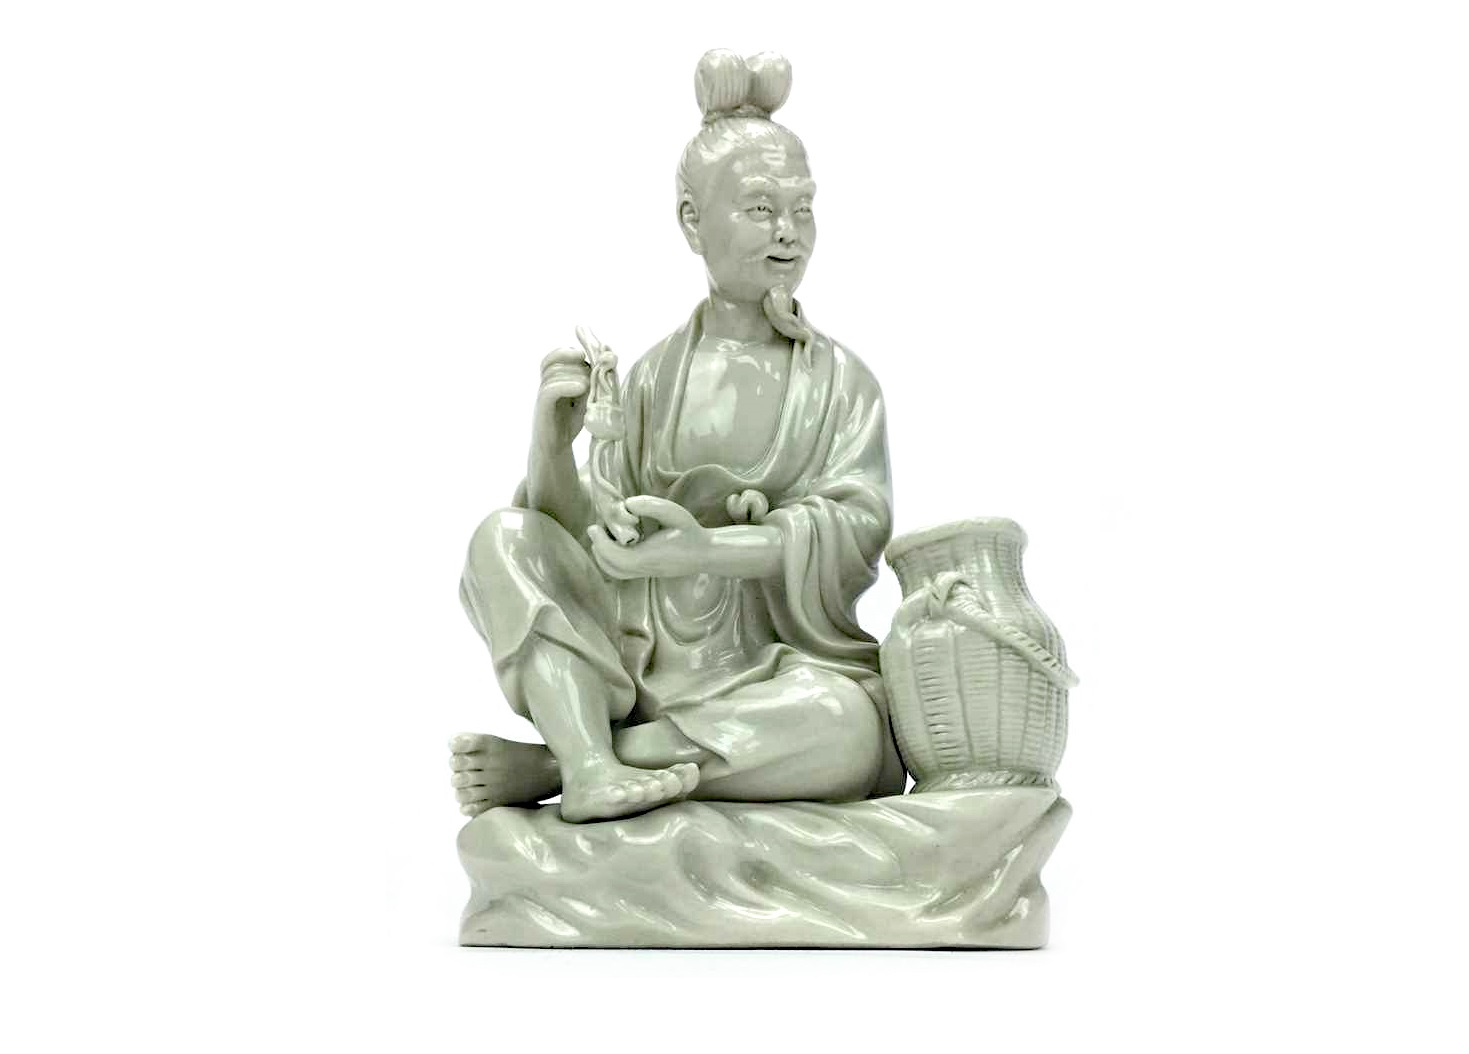 Lot 1086 - A 20TH CENTURY CHINESE BLANC DE CHINE FIGURE OF A MAN